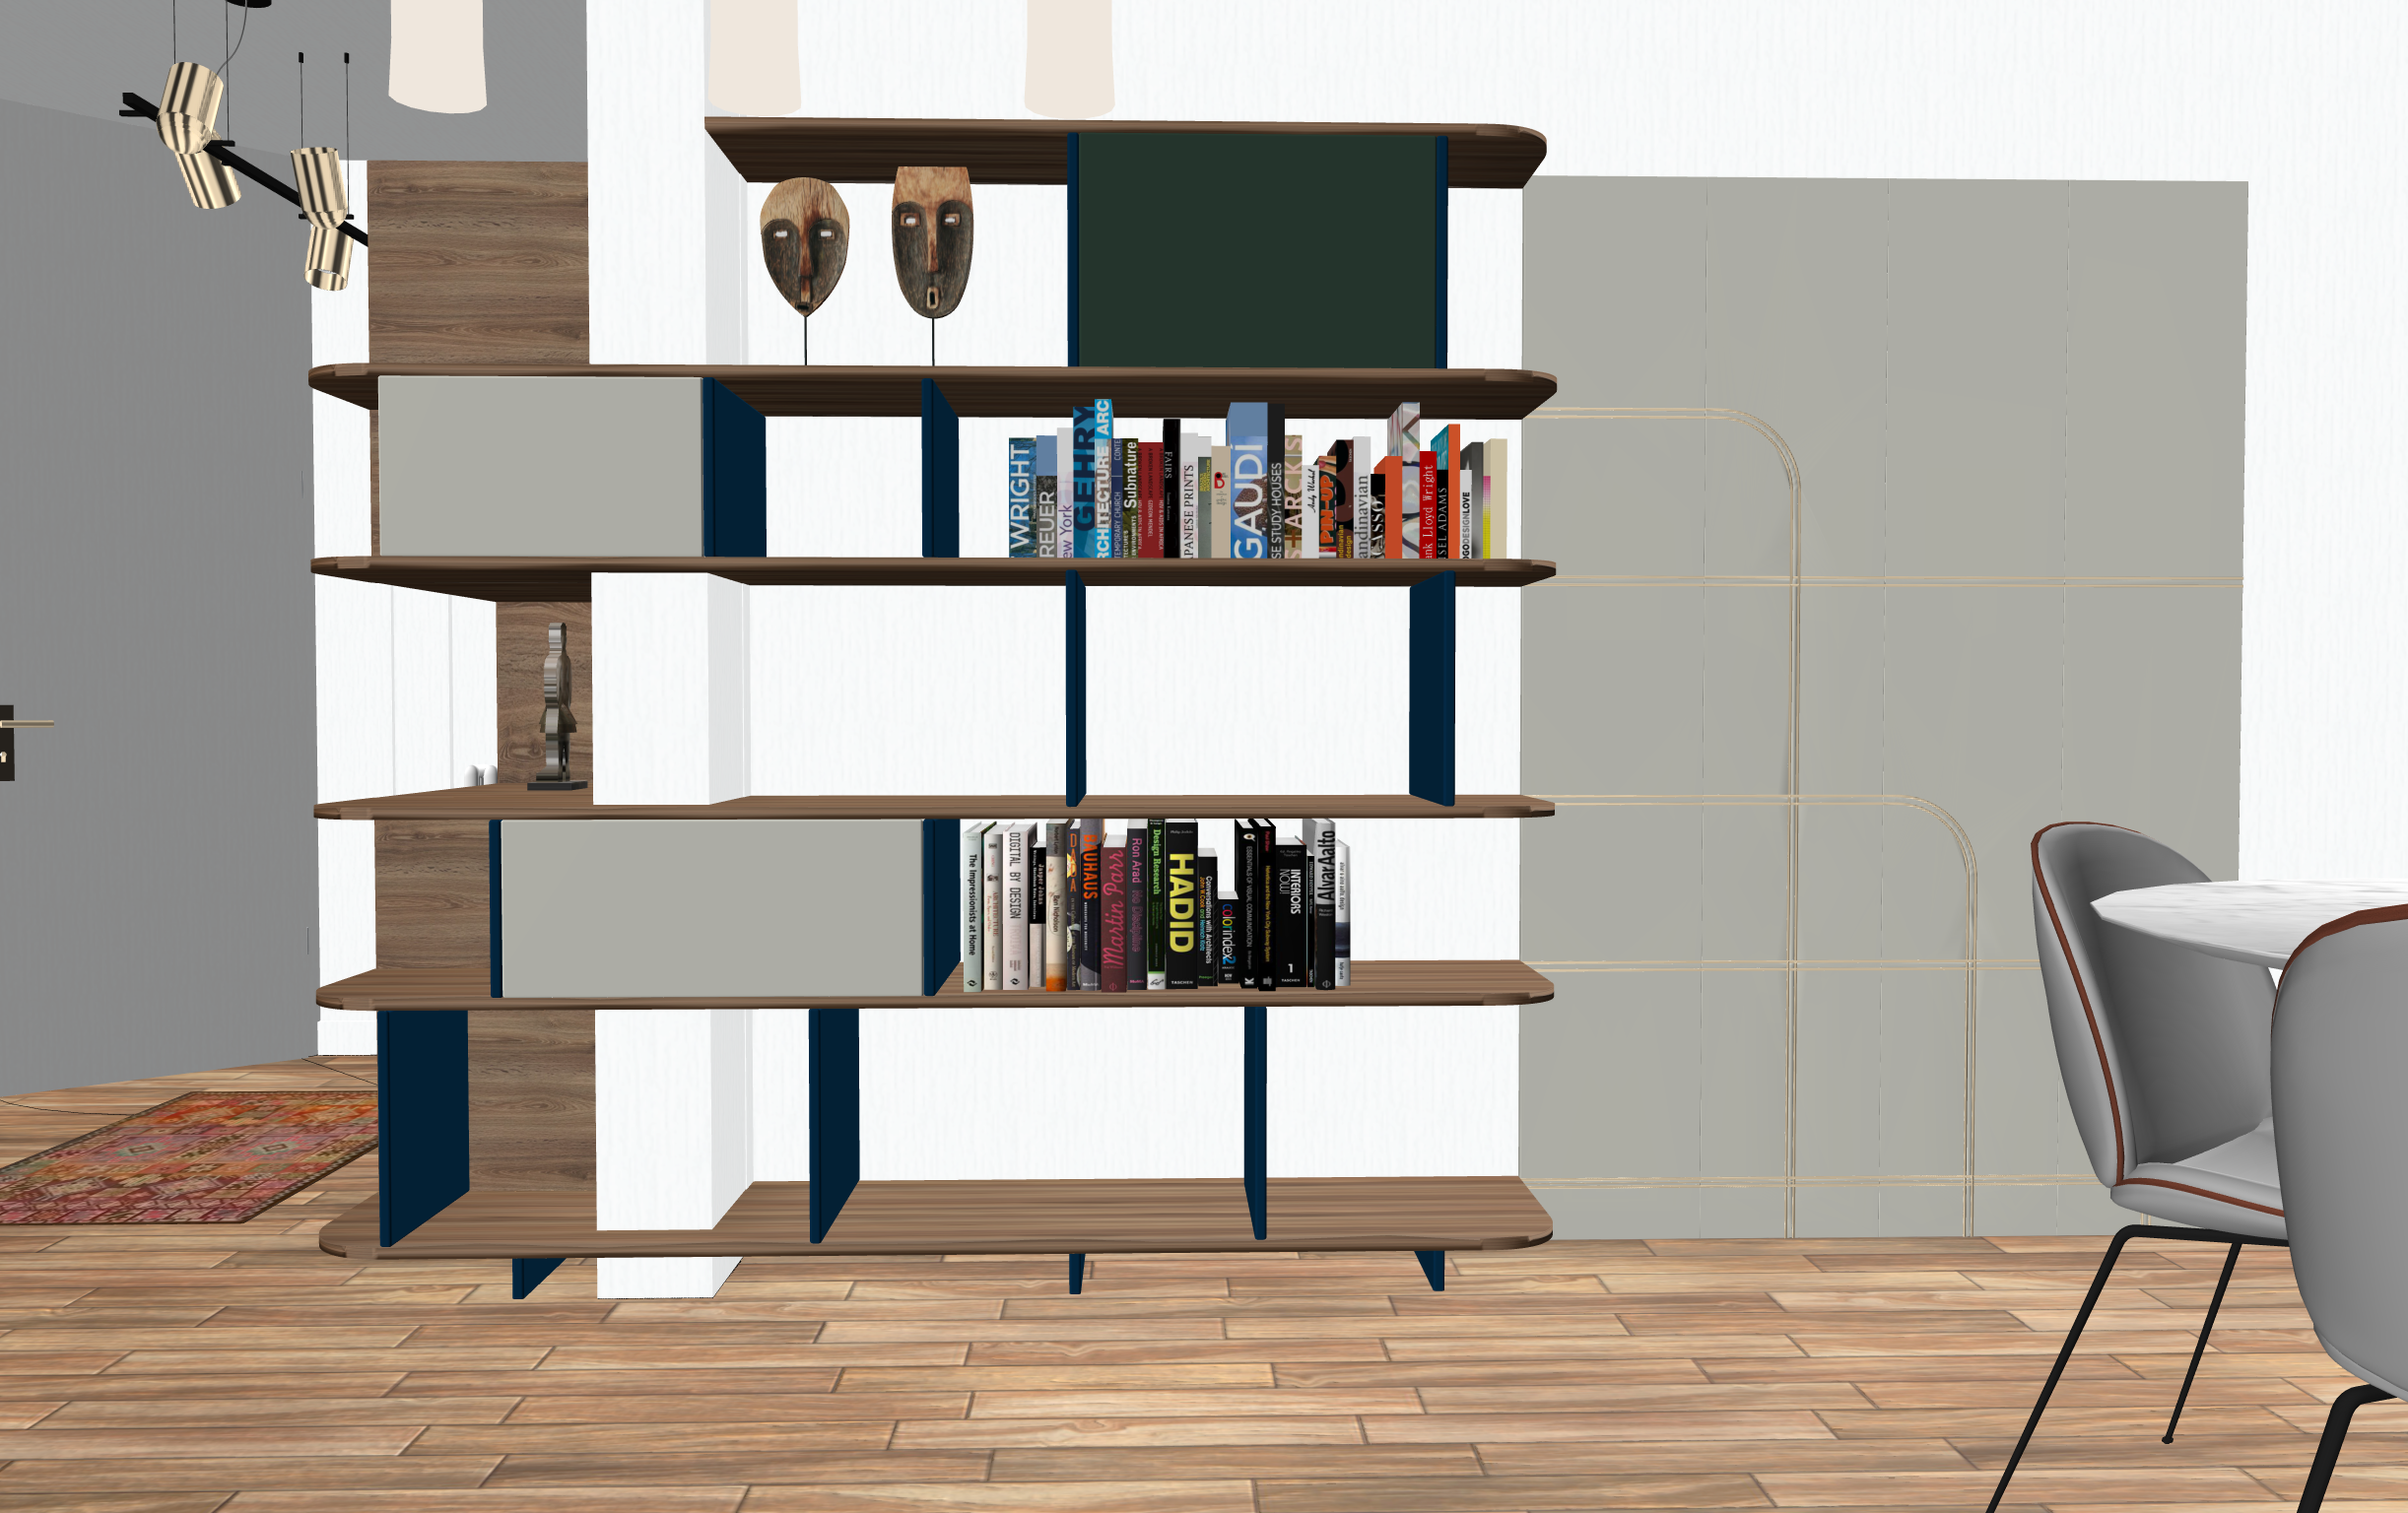 maison_bou_2019_neuilly_3d_7.png